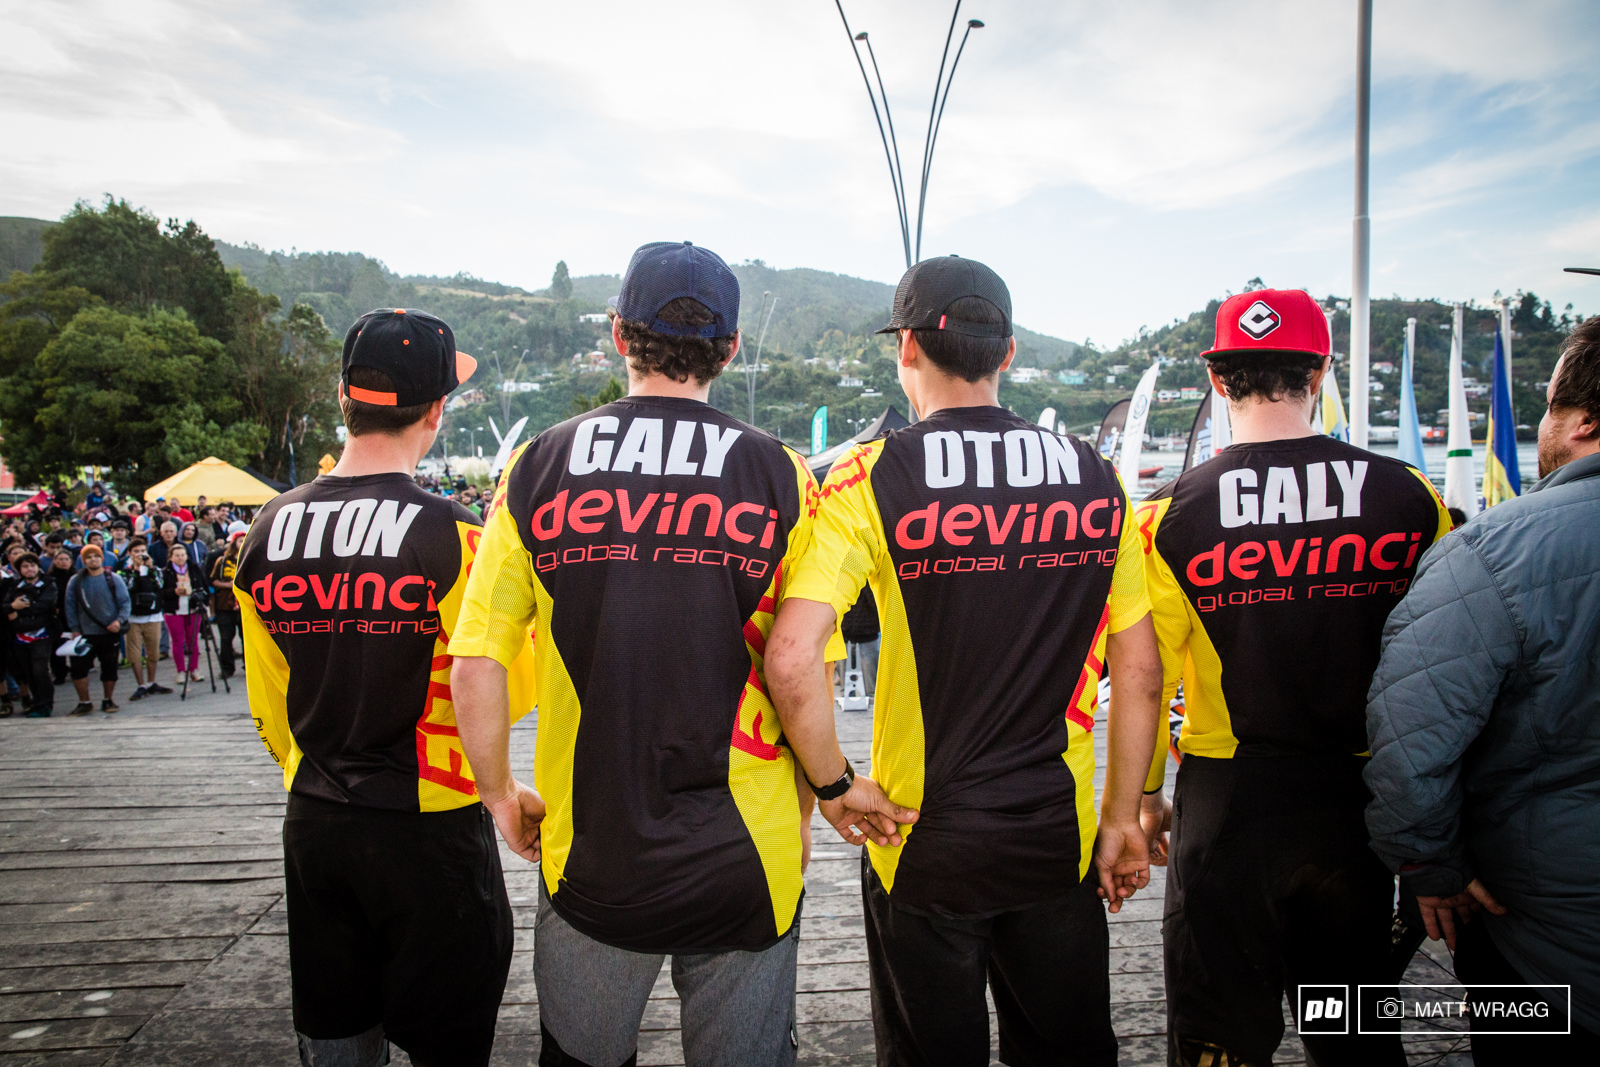 Devinci took the third spot in the team ranking today. Their secret Cloning.